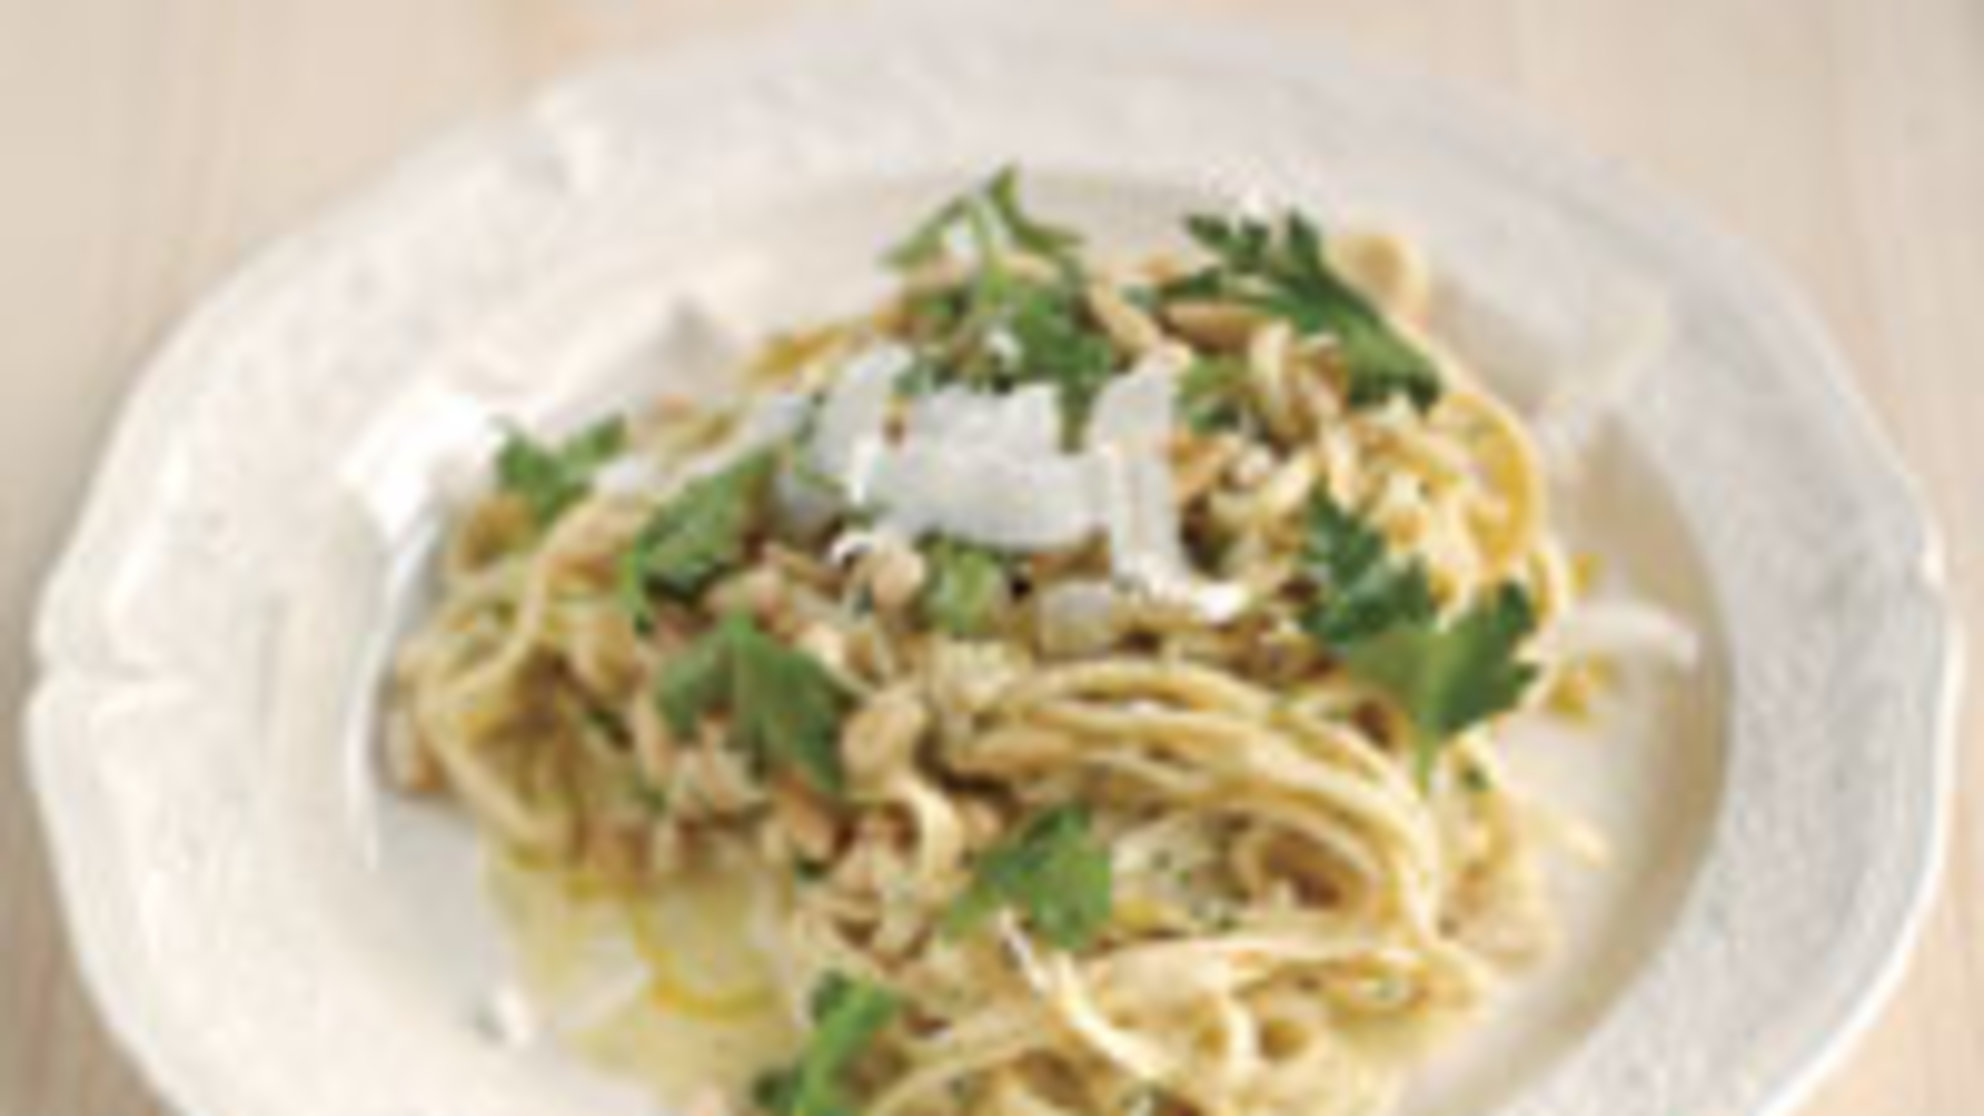 Jamie Oliver's Easy Summer Pasta Has Less Than 500 Calories